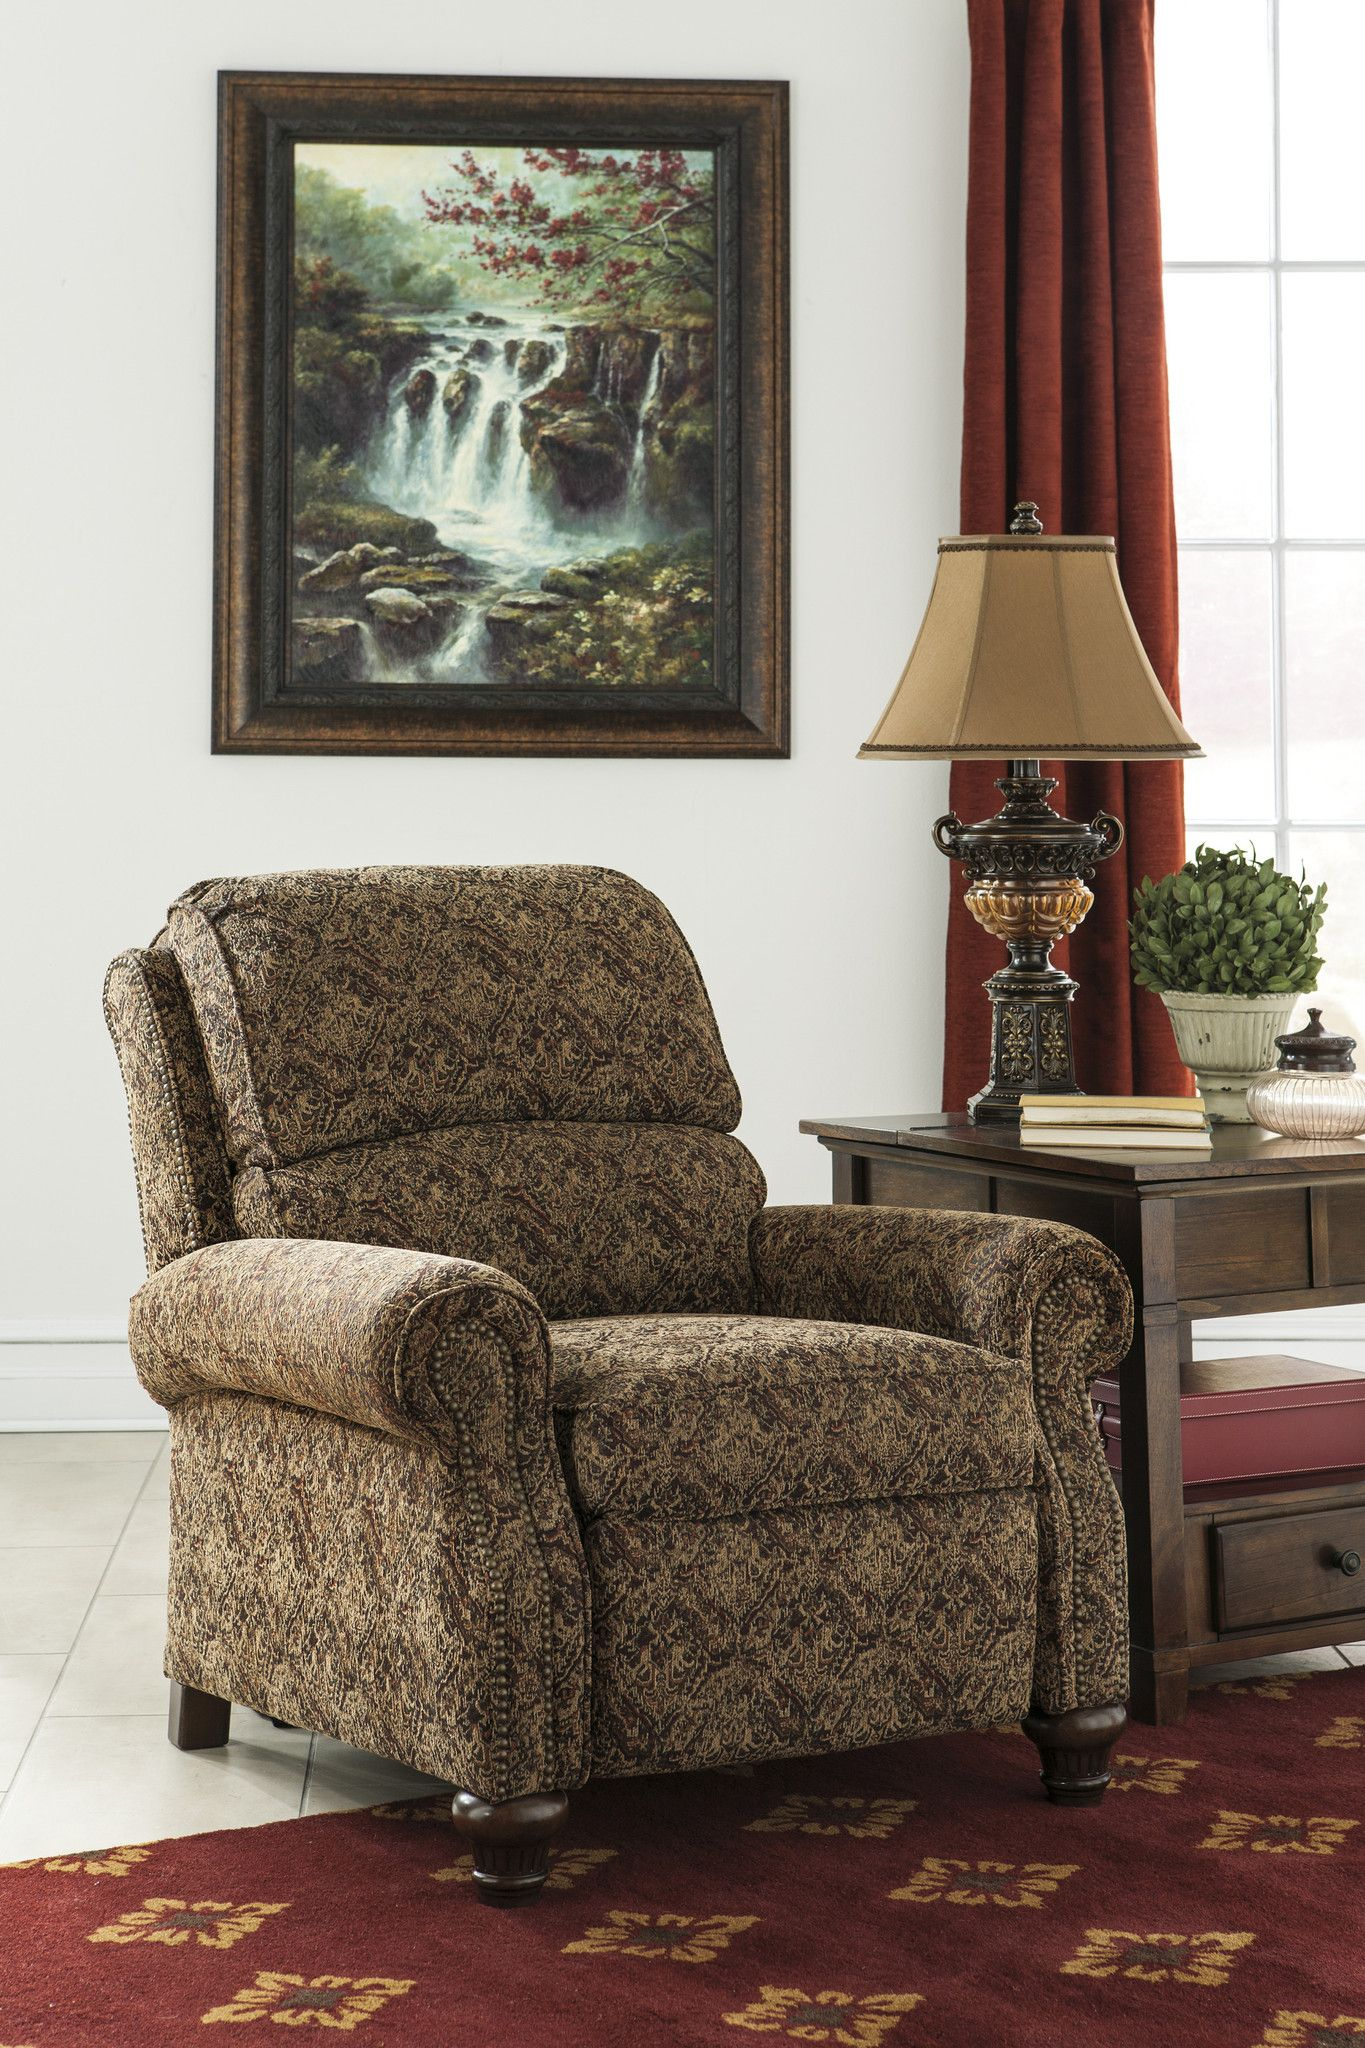 Walworth Accent Low Leg Recliner | Ashley furniture, Home ...